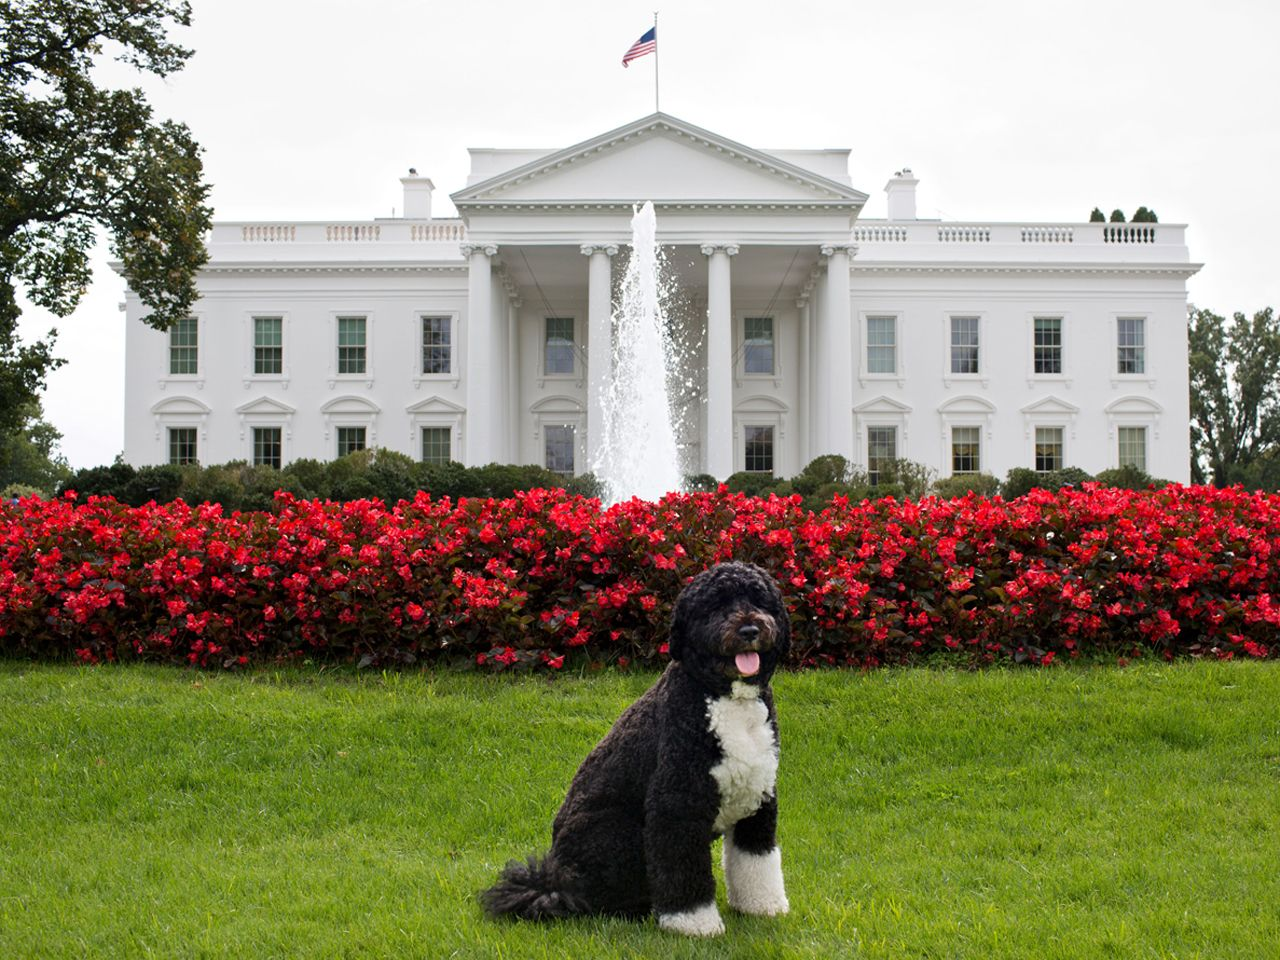 Bo Obama Gets Four More Years In White House Digs Bo Obama